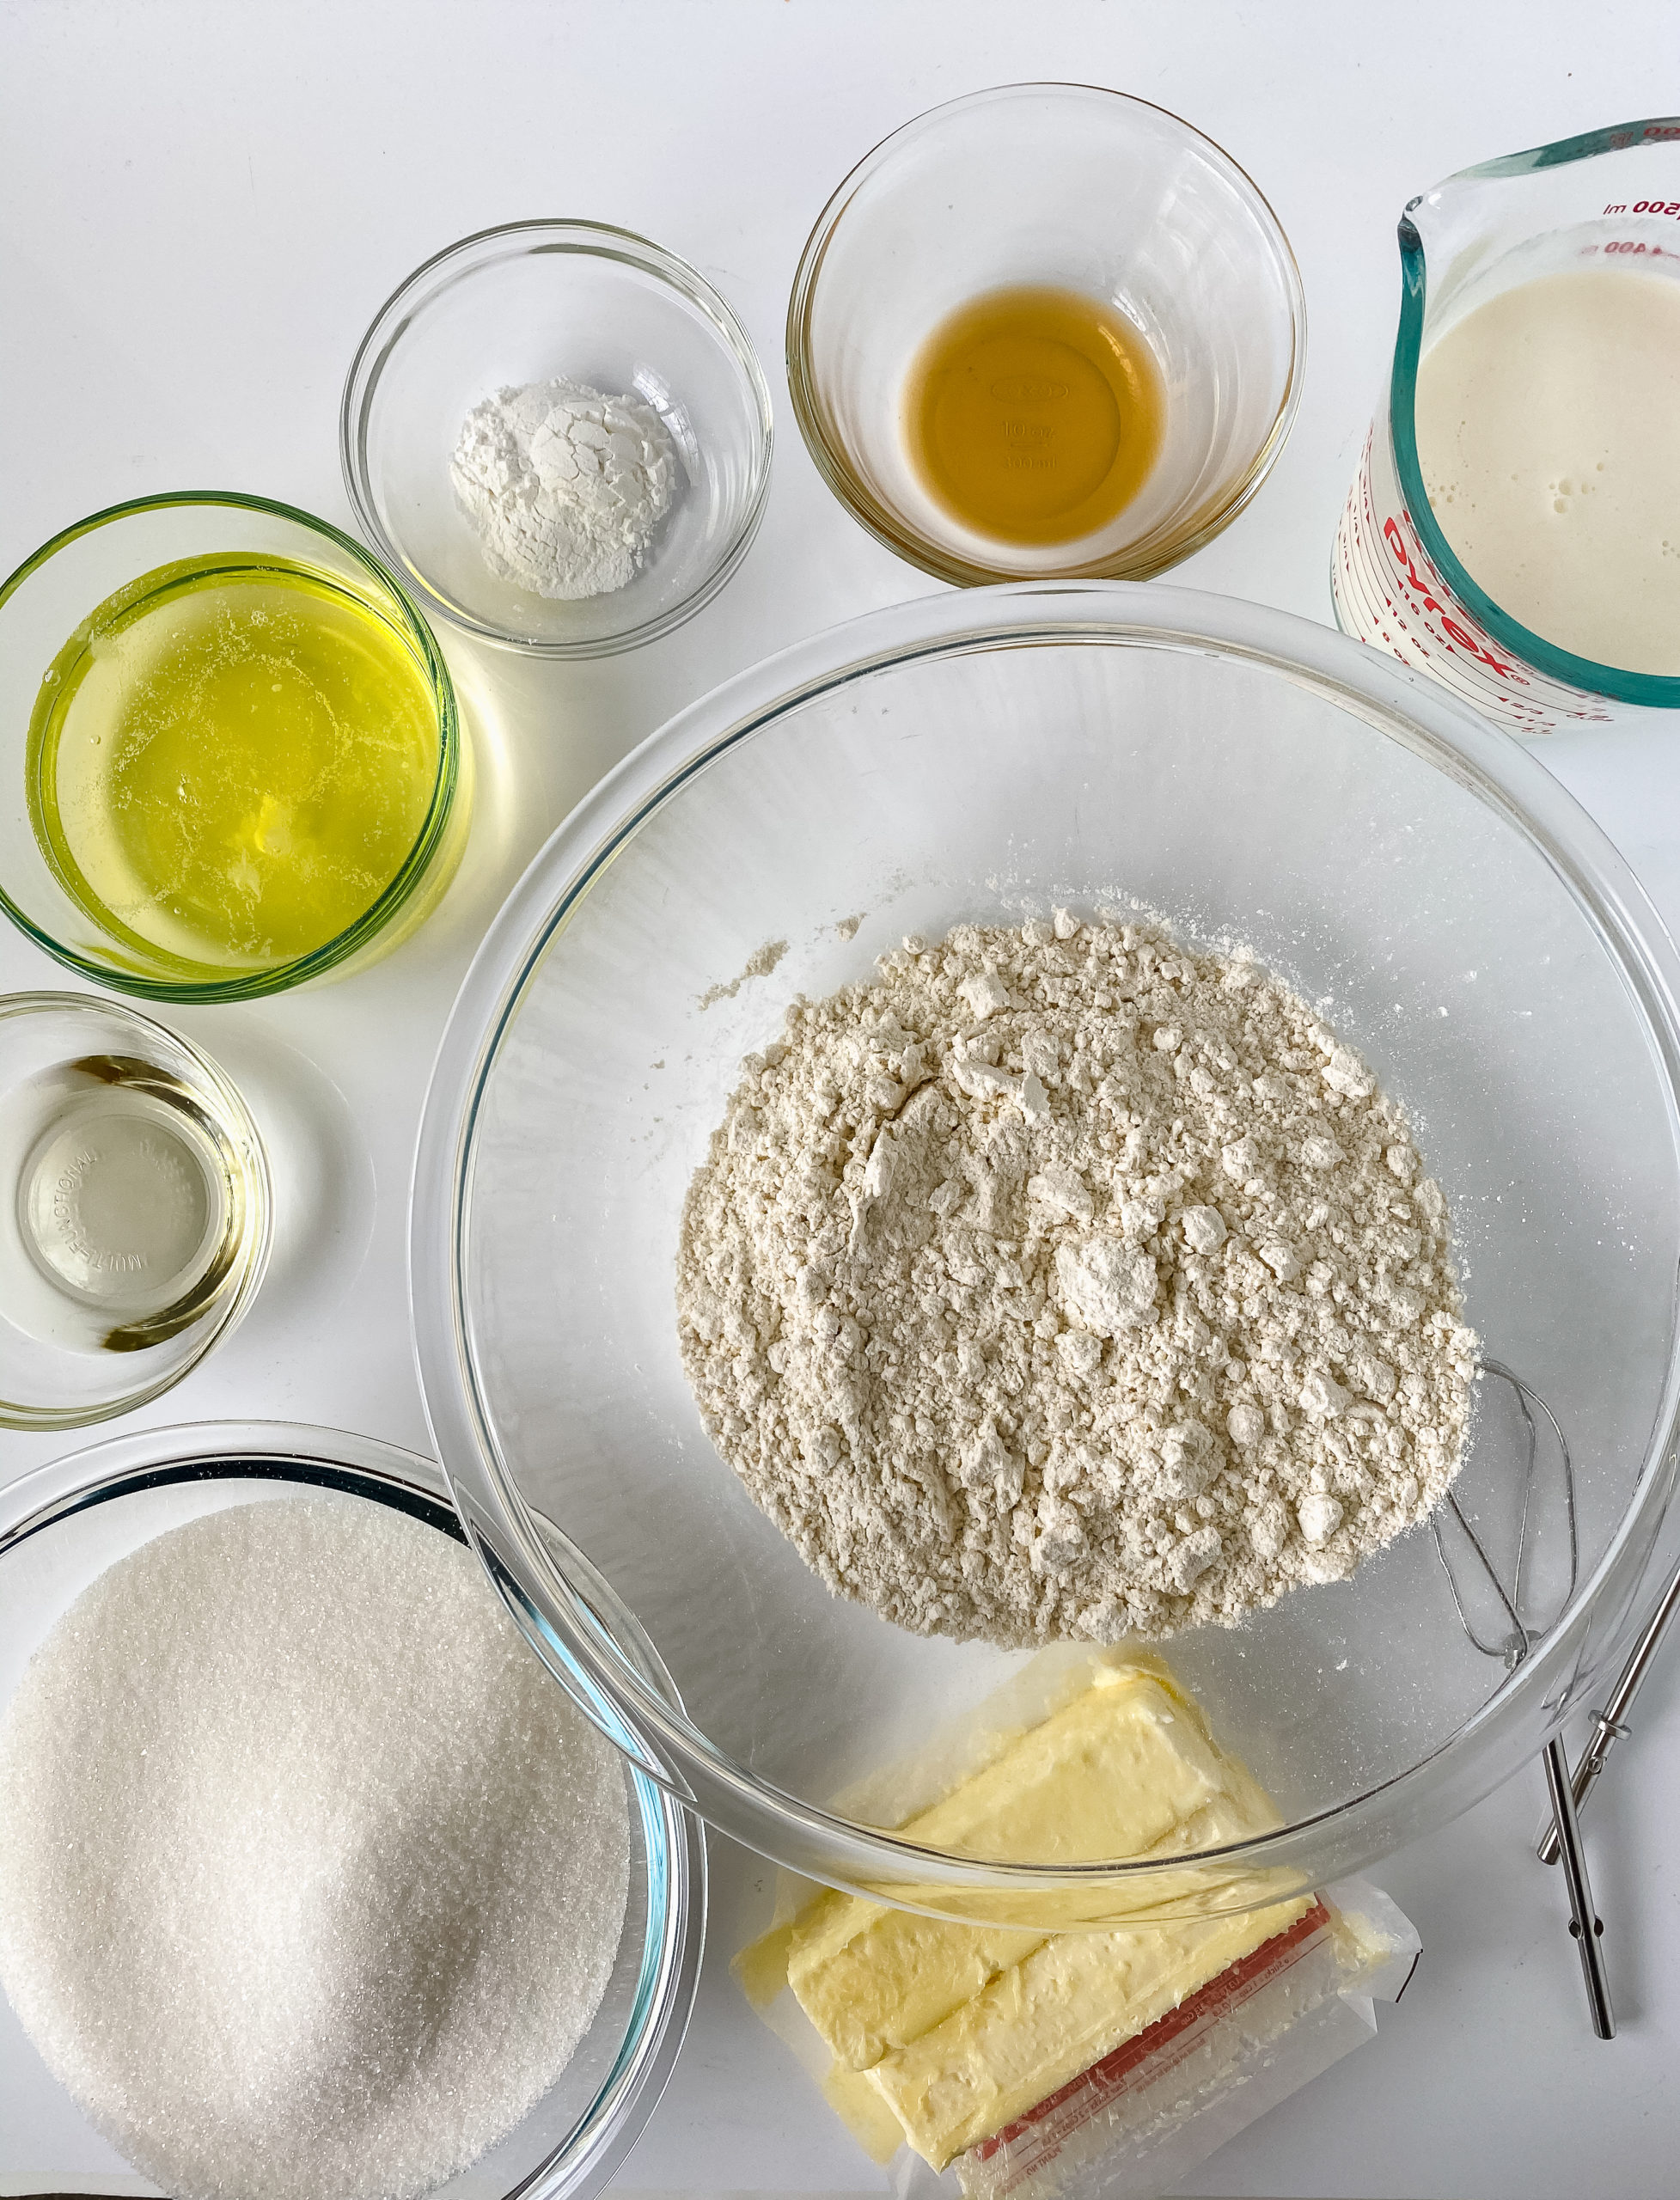 Ingredients in clear bowls for cake. Flour, oil, sugar vanilla. etc.